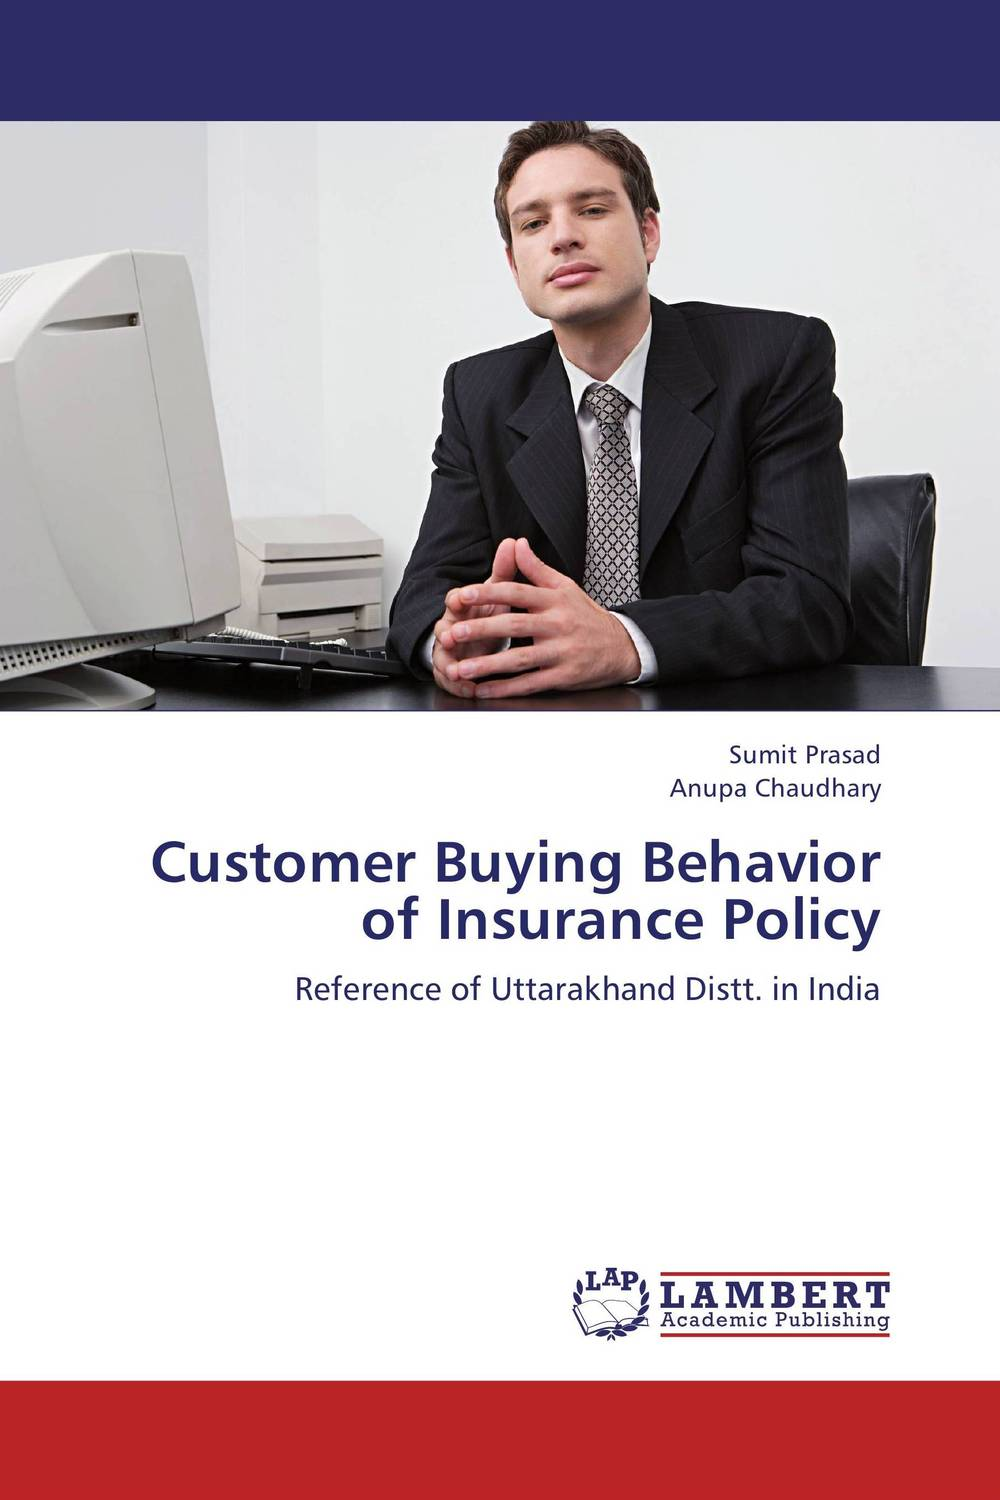 Customer Buying Behavior of Insurance Policy bruce bridgeman the biology of behavior and mind page 11